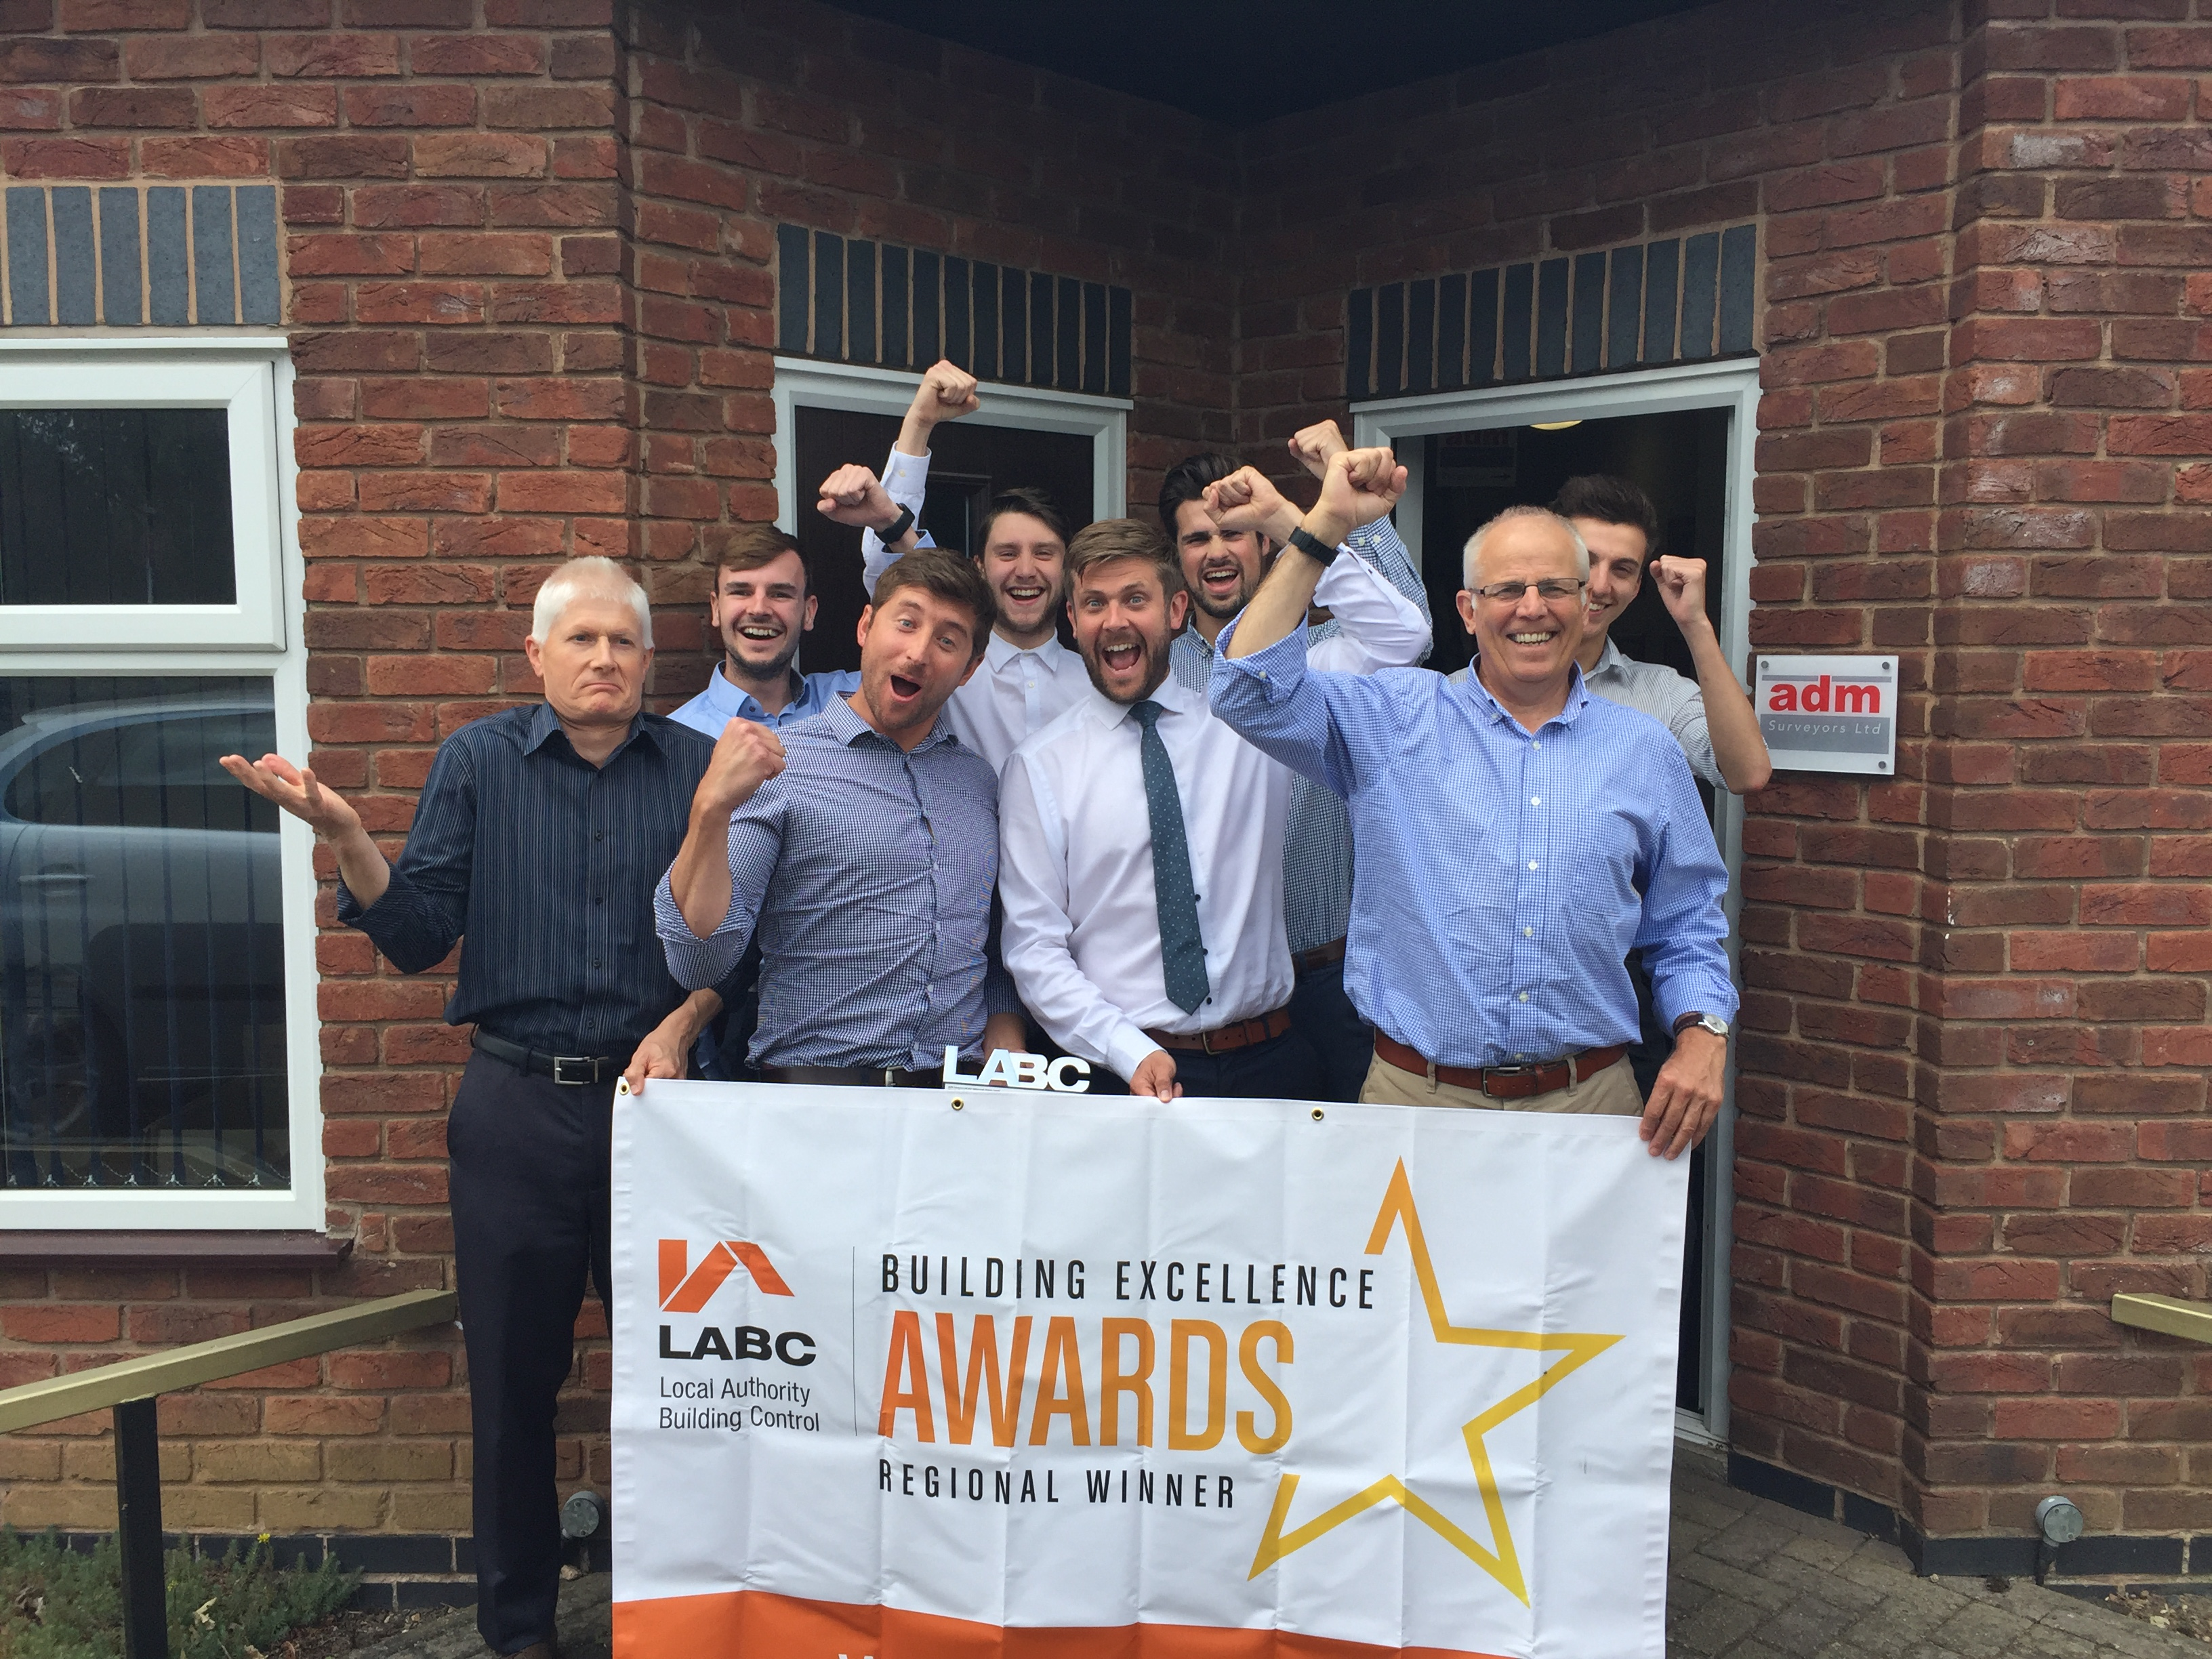 Adm surveyors building excellence award winners